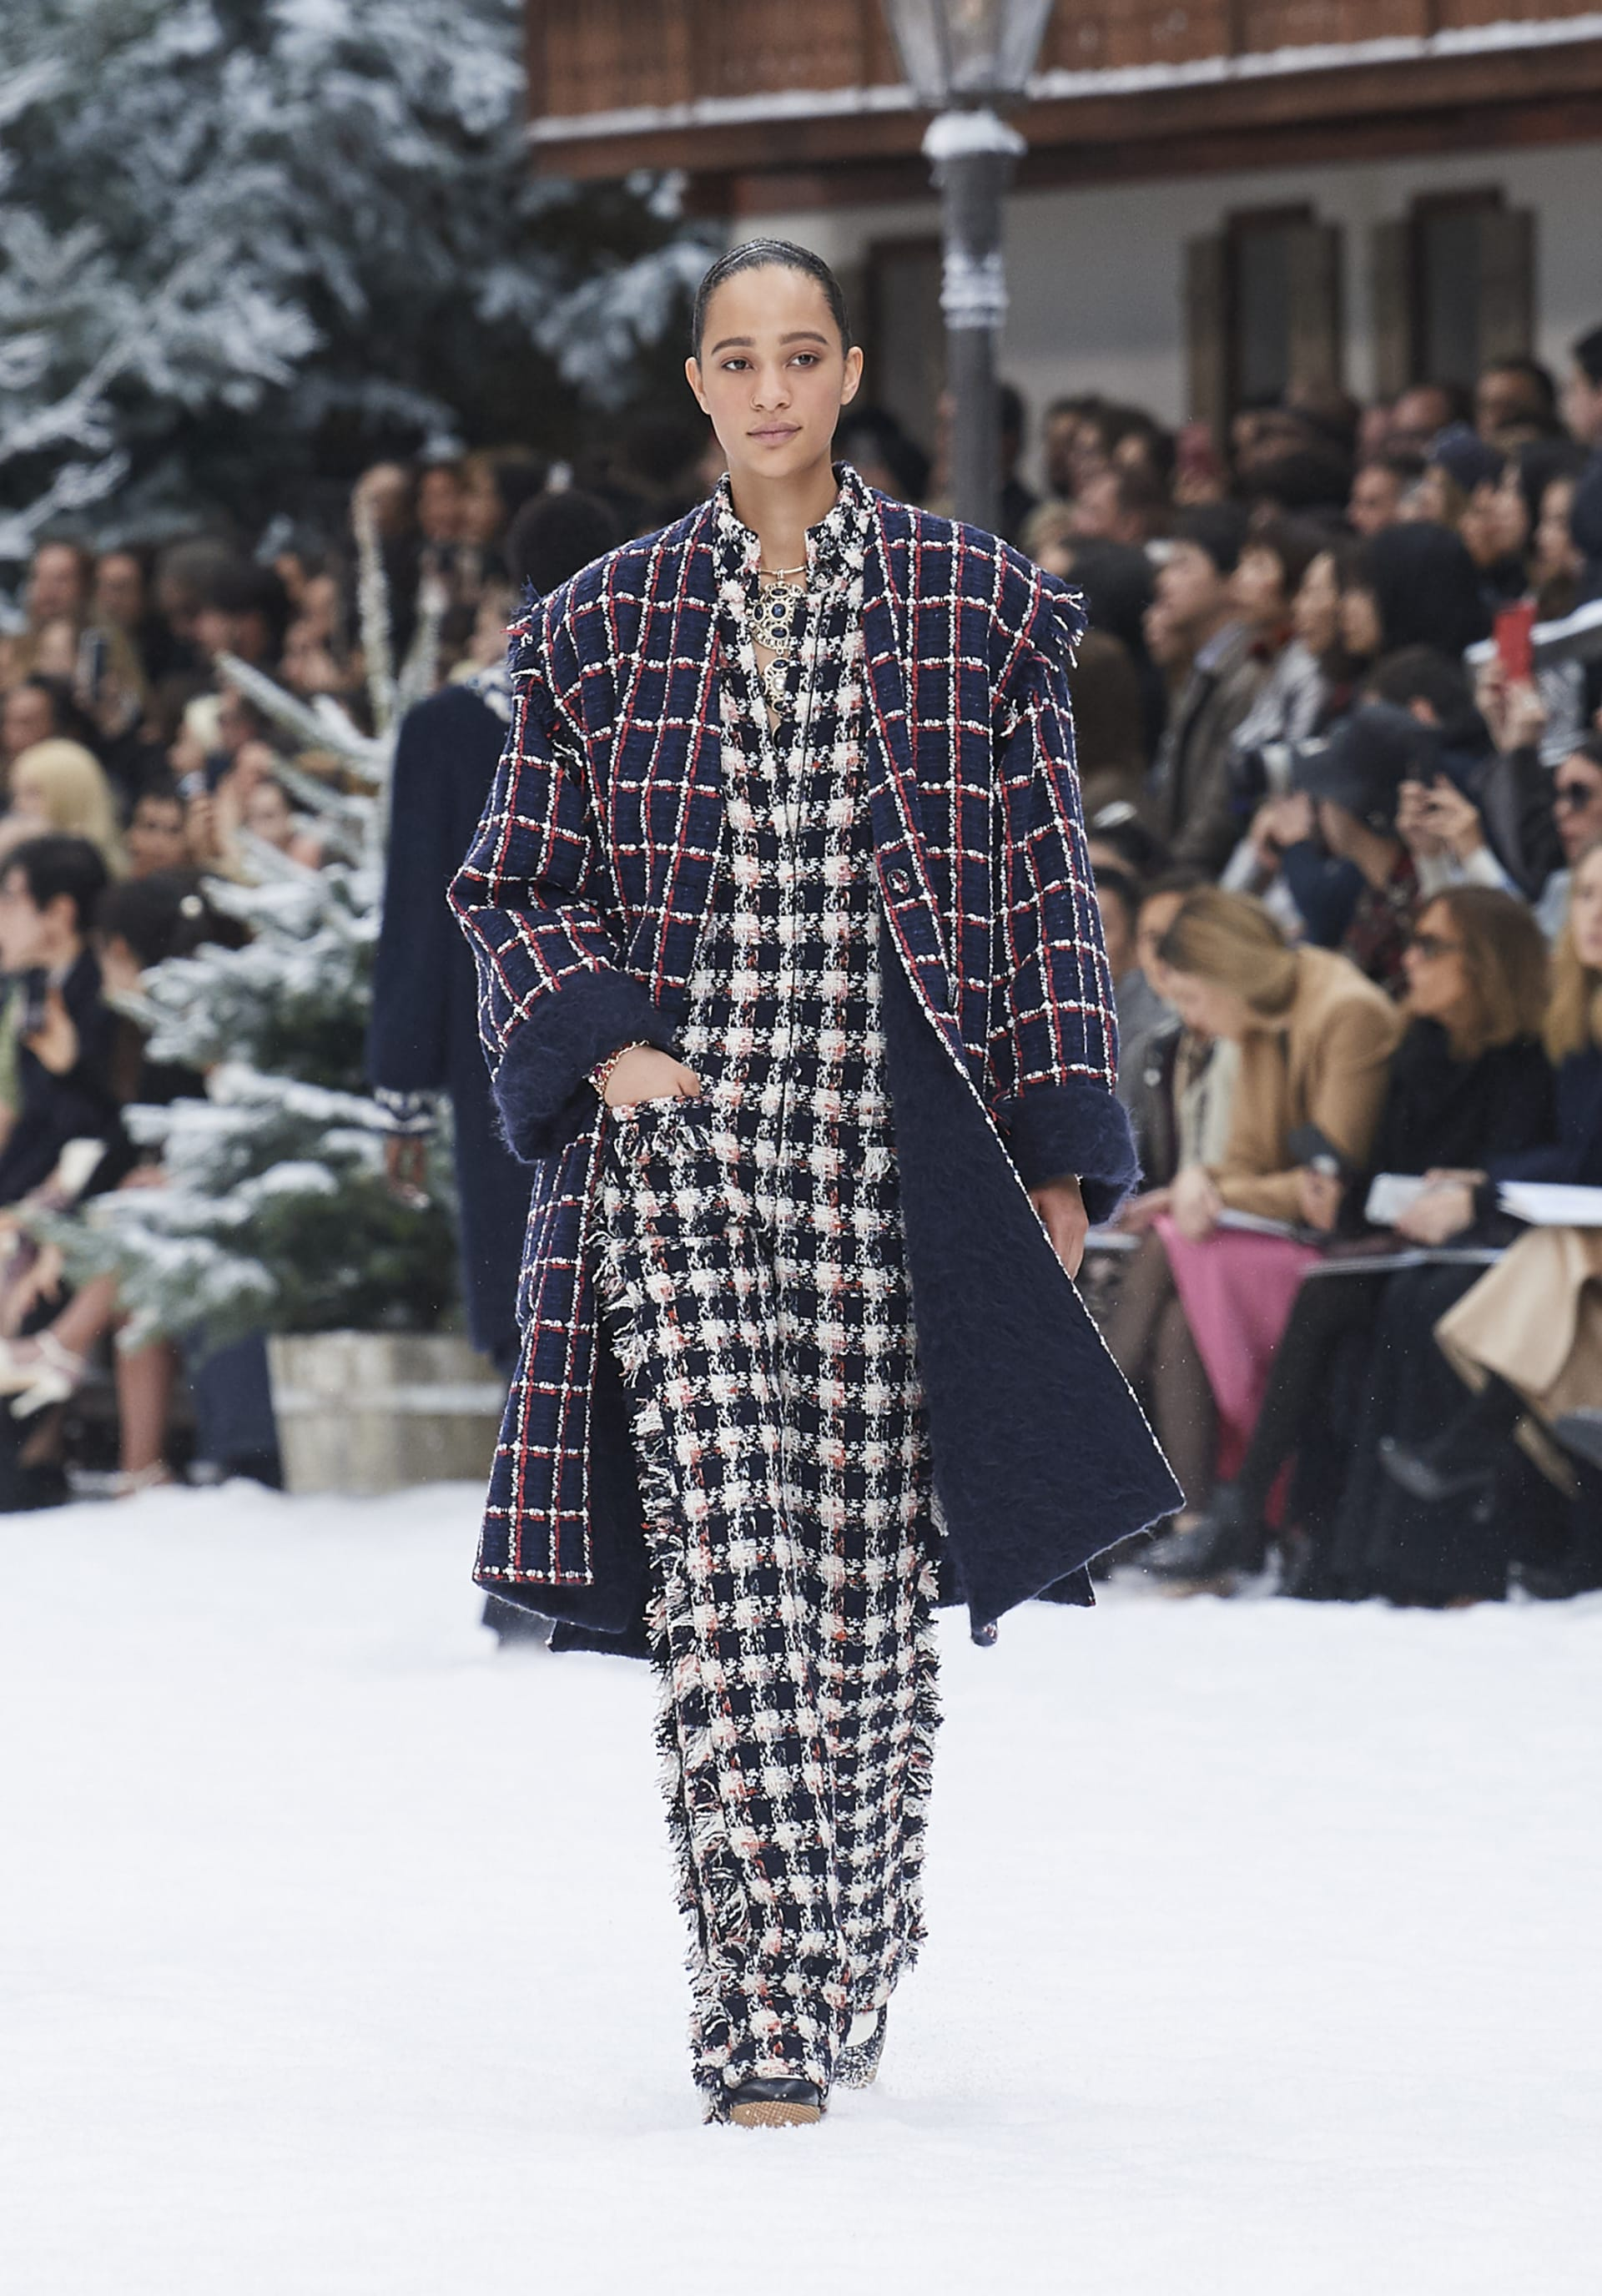 View 1 - Look 30 - Fall-Winter 2019/20